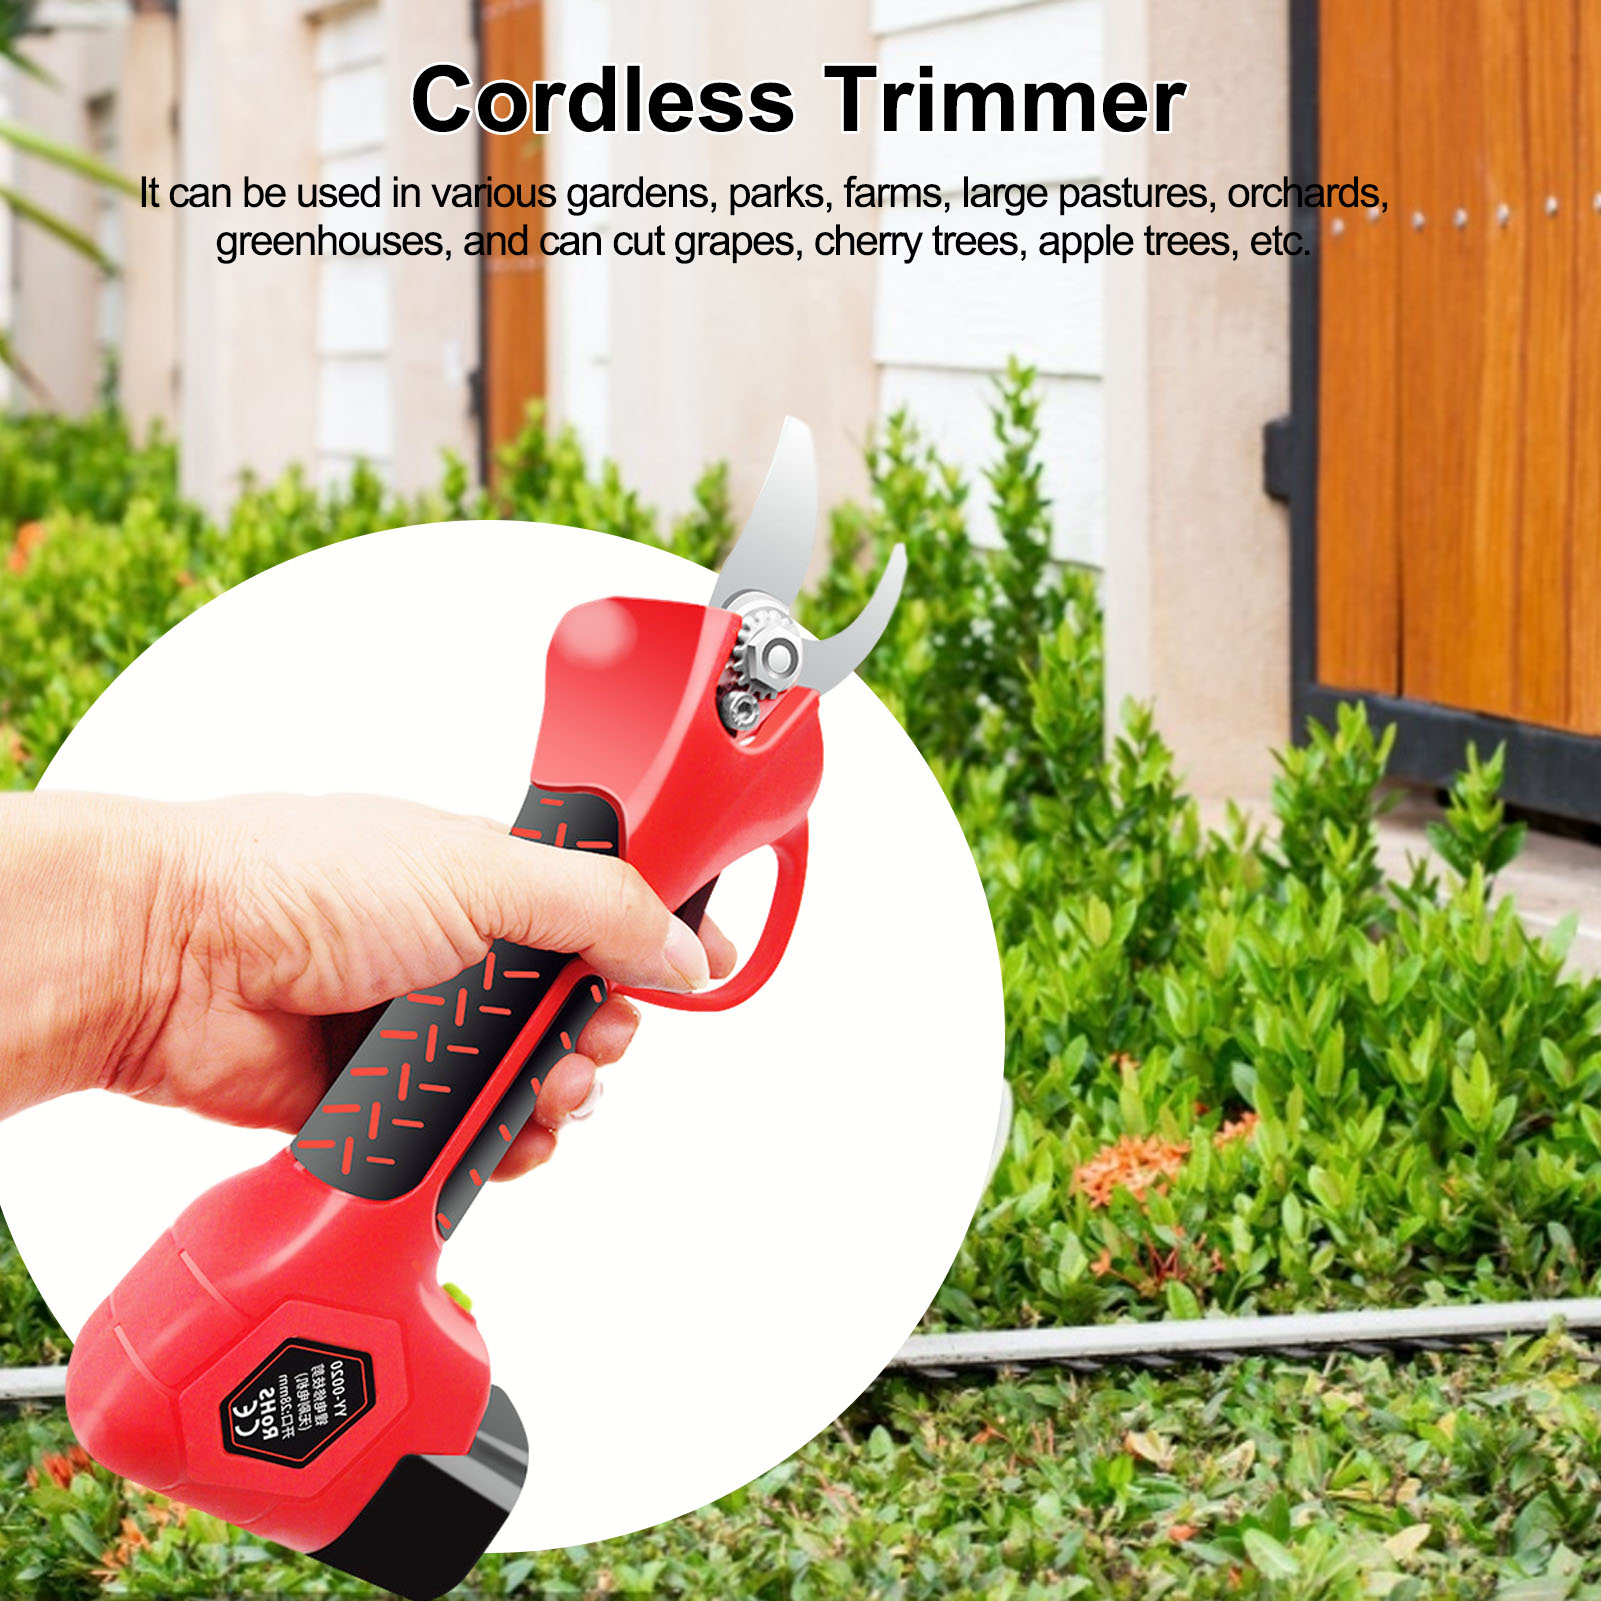 300 W 16 8V Cordless Pruner Hand-held Electric Pruner Shear with 2 Battery Efficient Fruit Tree Bonsai Pruning Branches Cutter